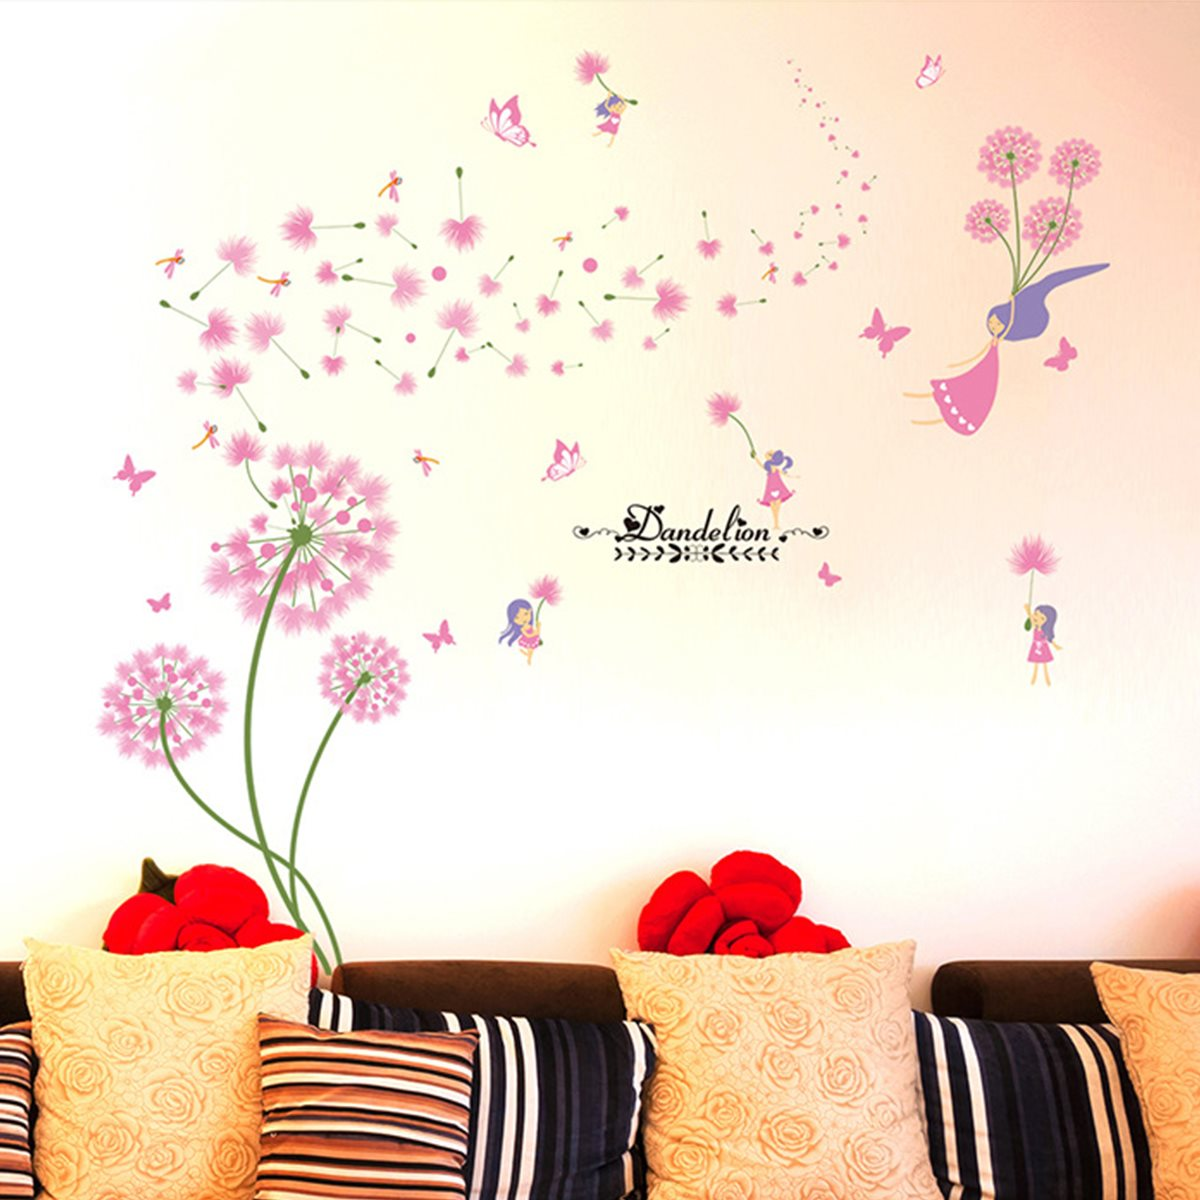 Dandelion wall sticker lovely pink cute baby girl plant stikcers dandelion wall sticker lovely pink cute baby girl plant stikcers sweet kids room decor poster decoration wall art wall decals in wall stickers from home amipublicfo Images